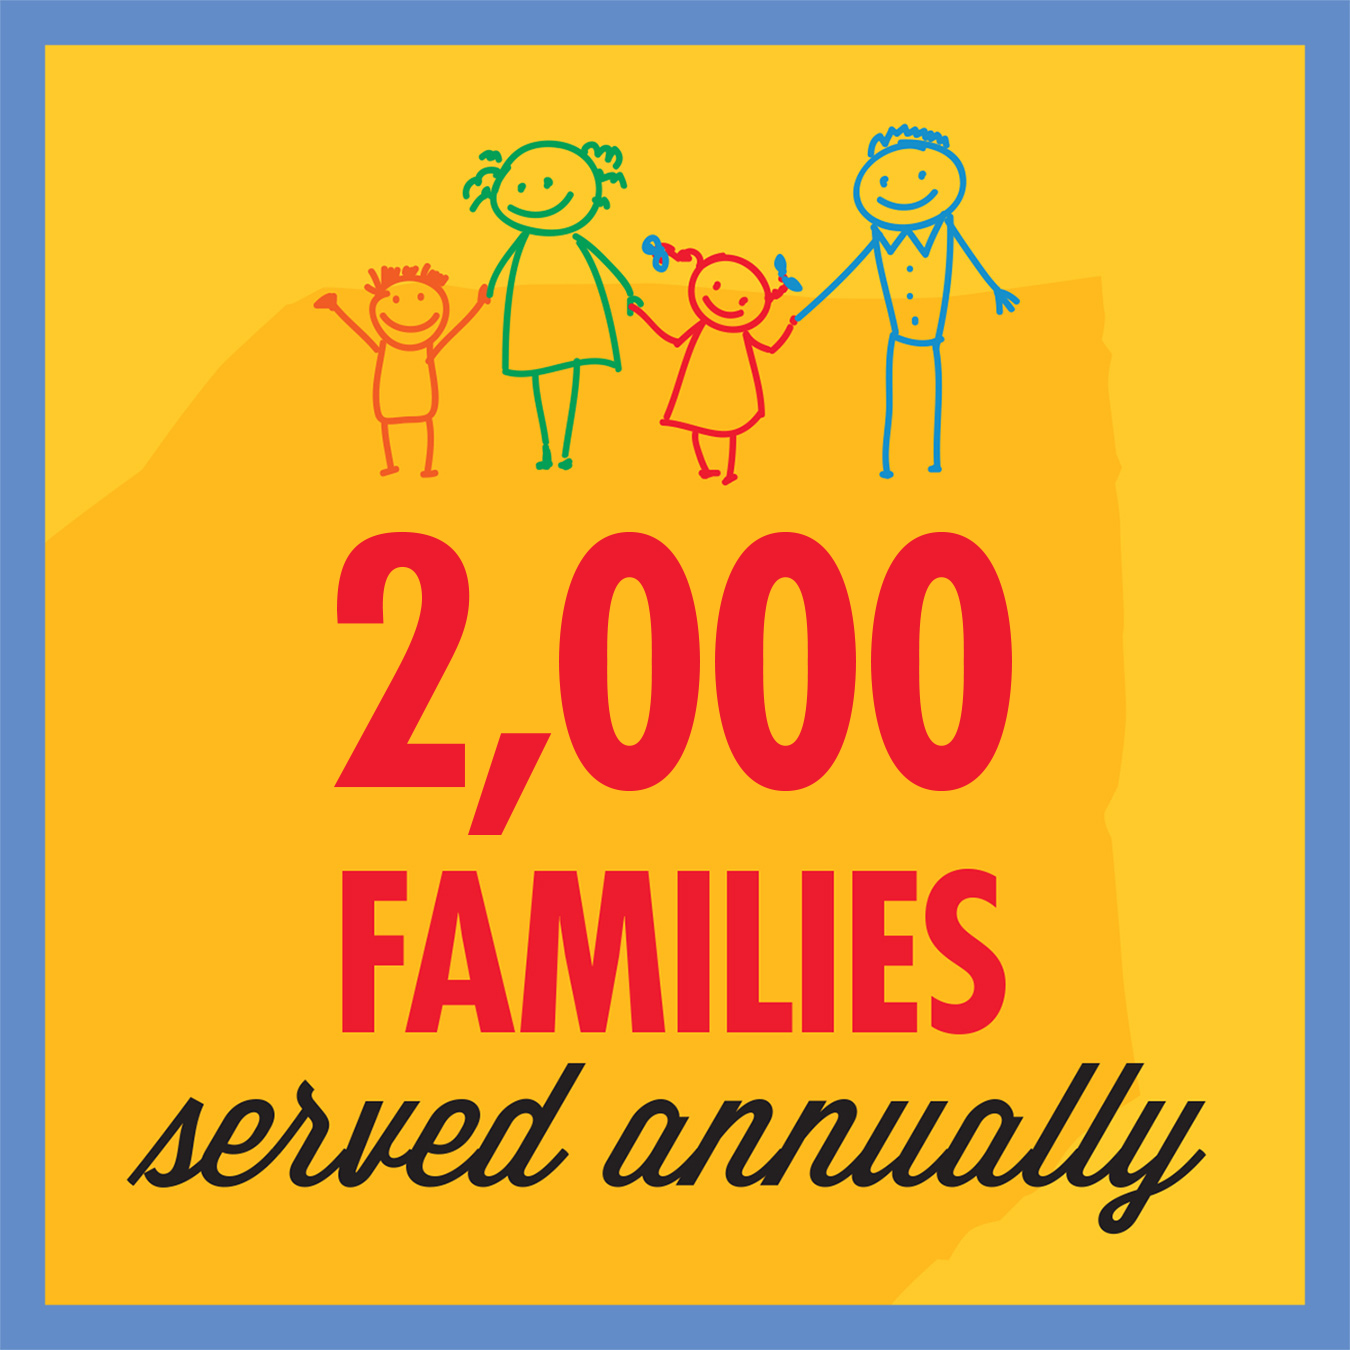 2,000 families served annually